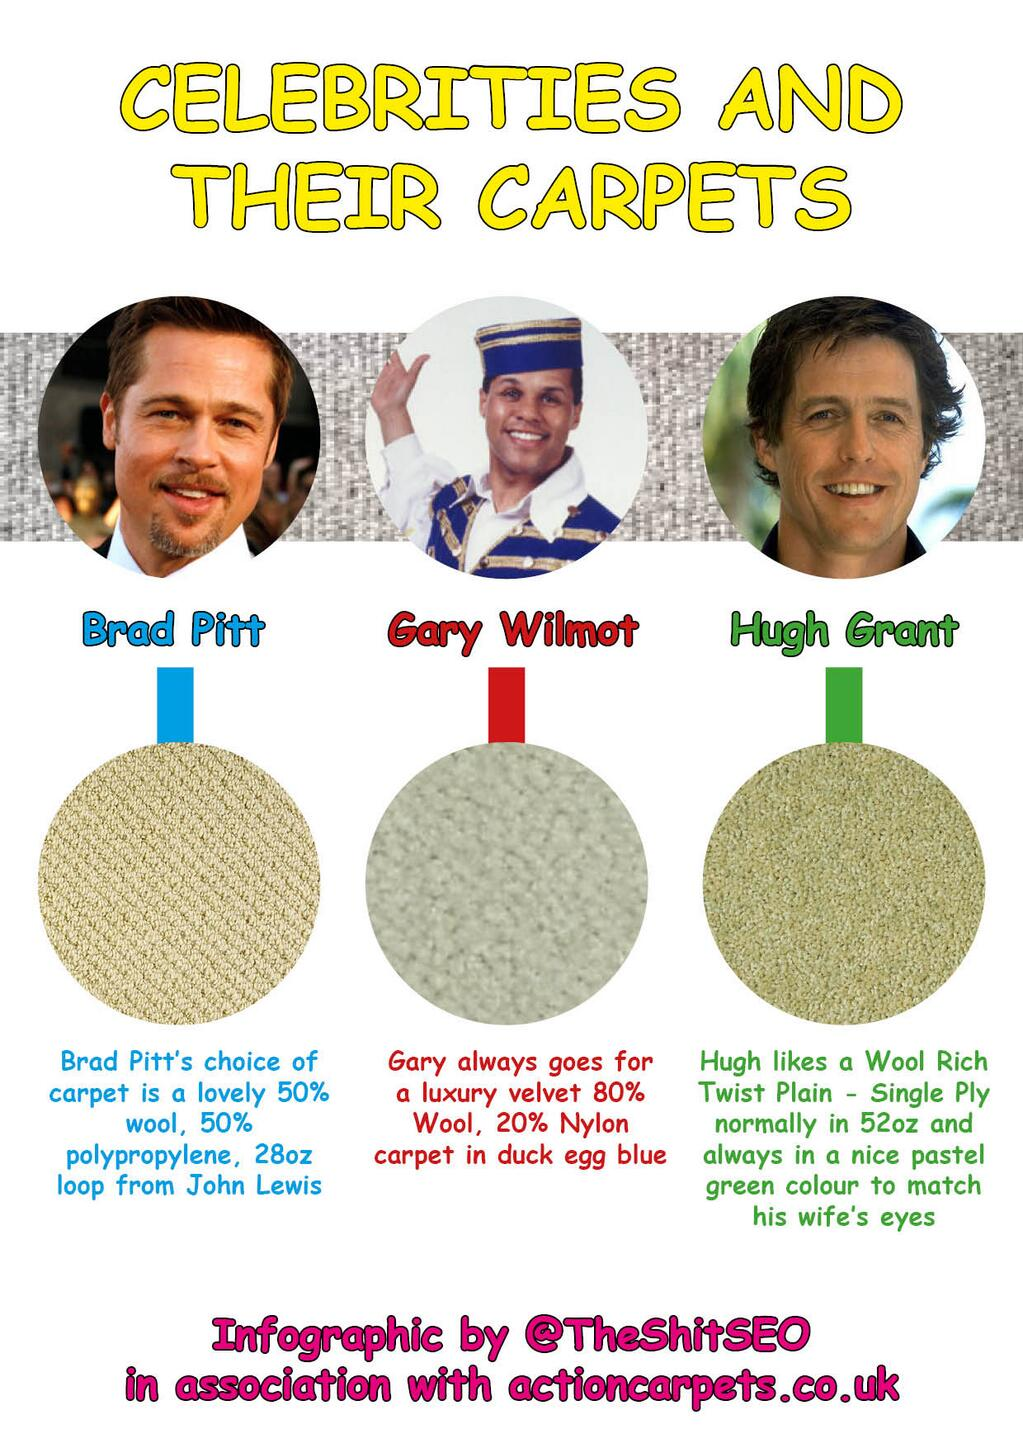 Celebrities and their carpets infographic